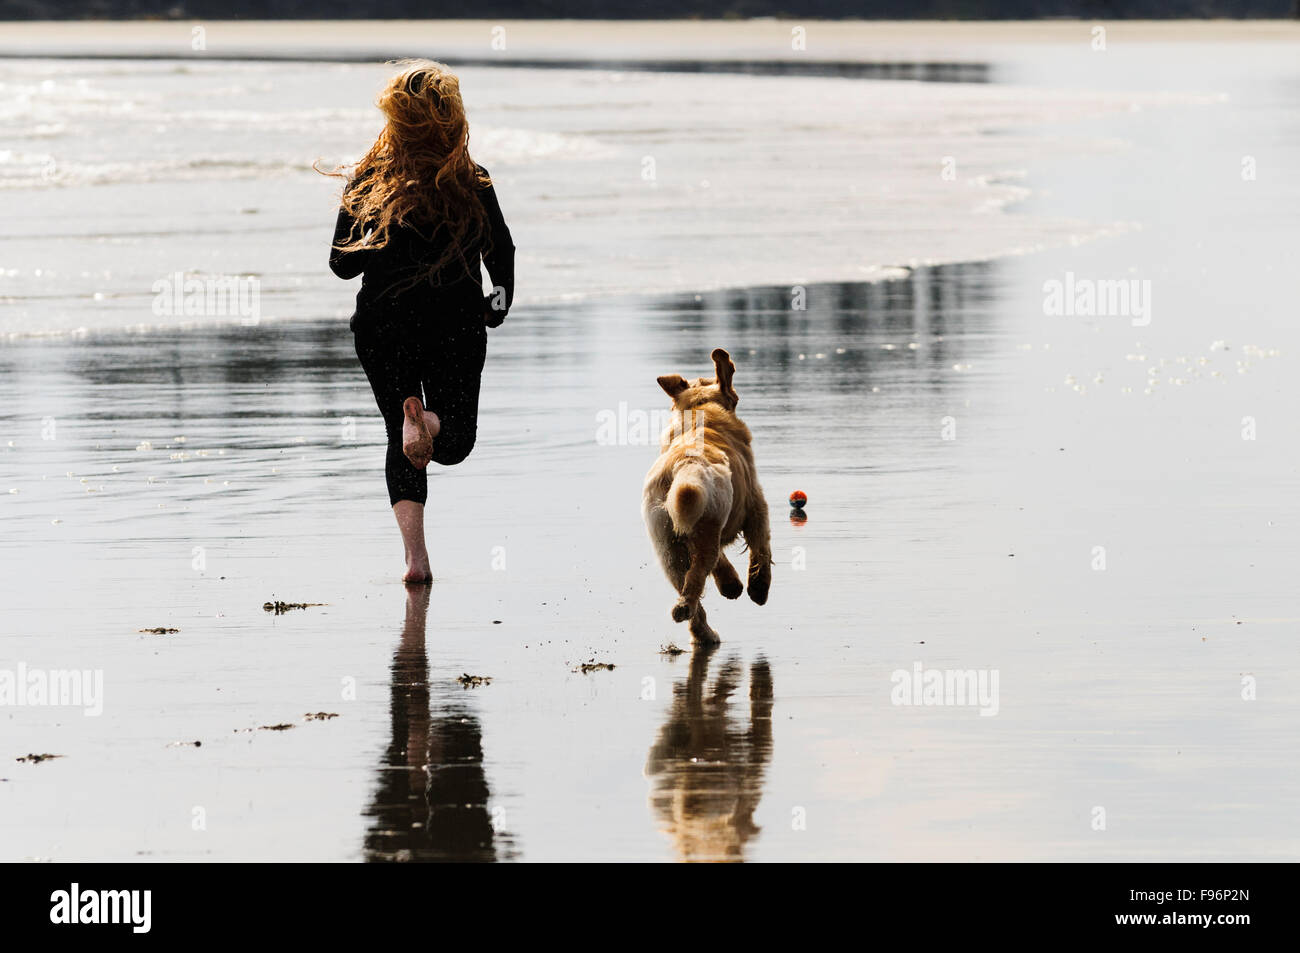 A young woman and her Golden Retriever running after a ball while on Chesterman Beach in Tofino, British Columbia. Stock Photo